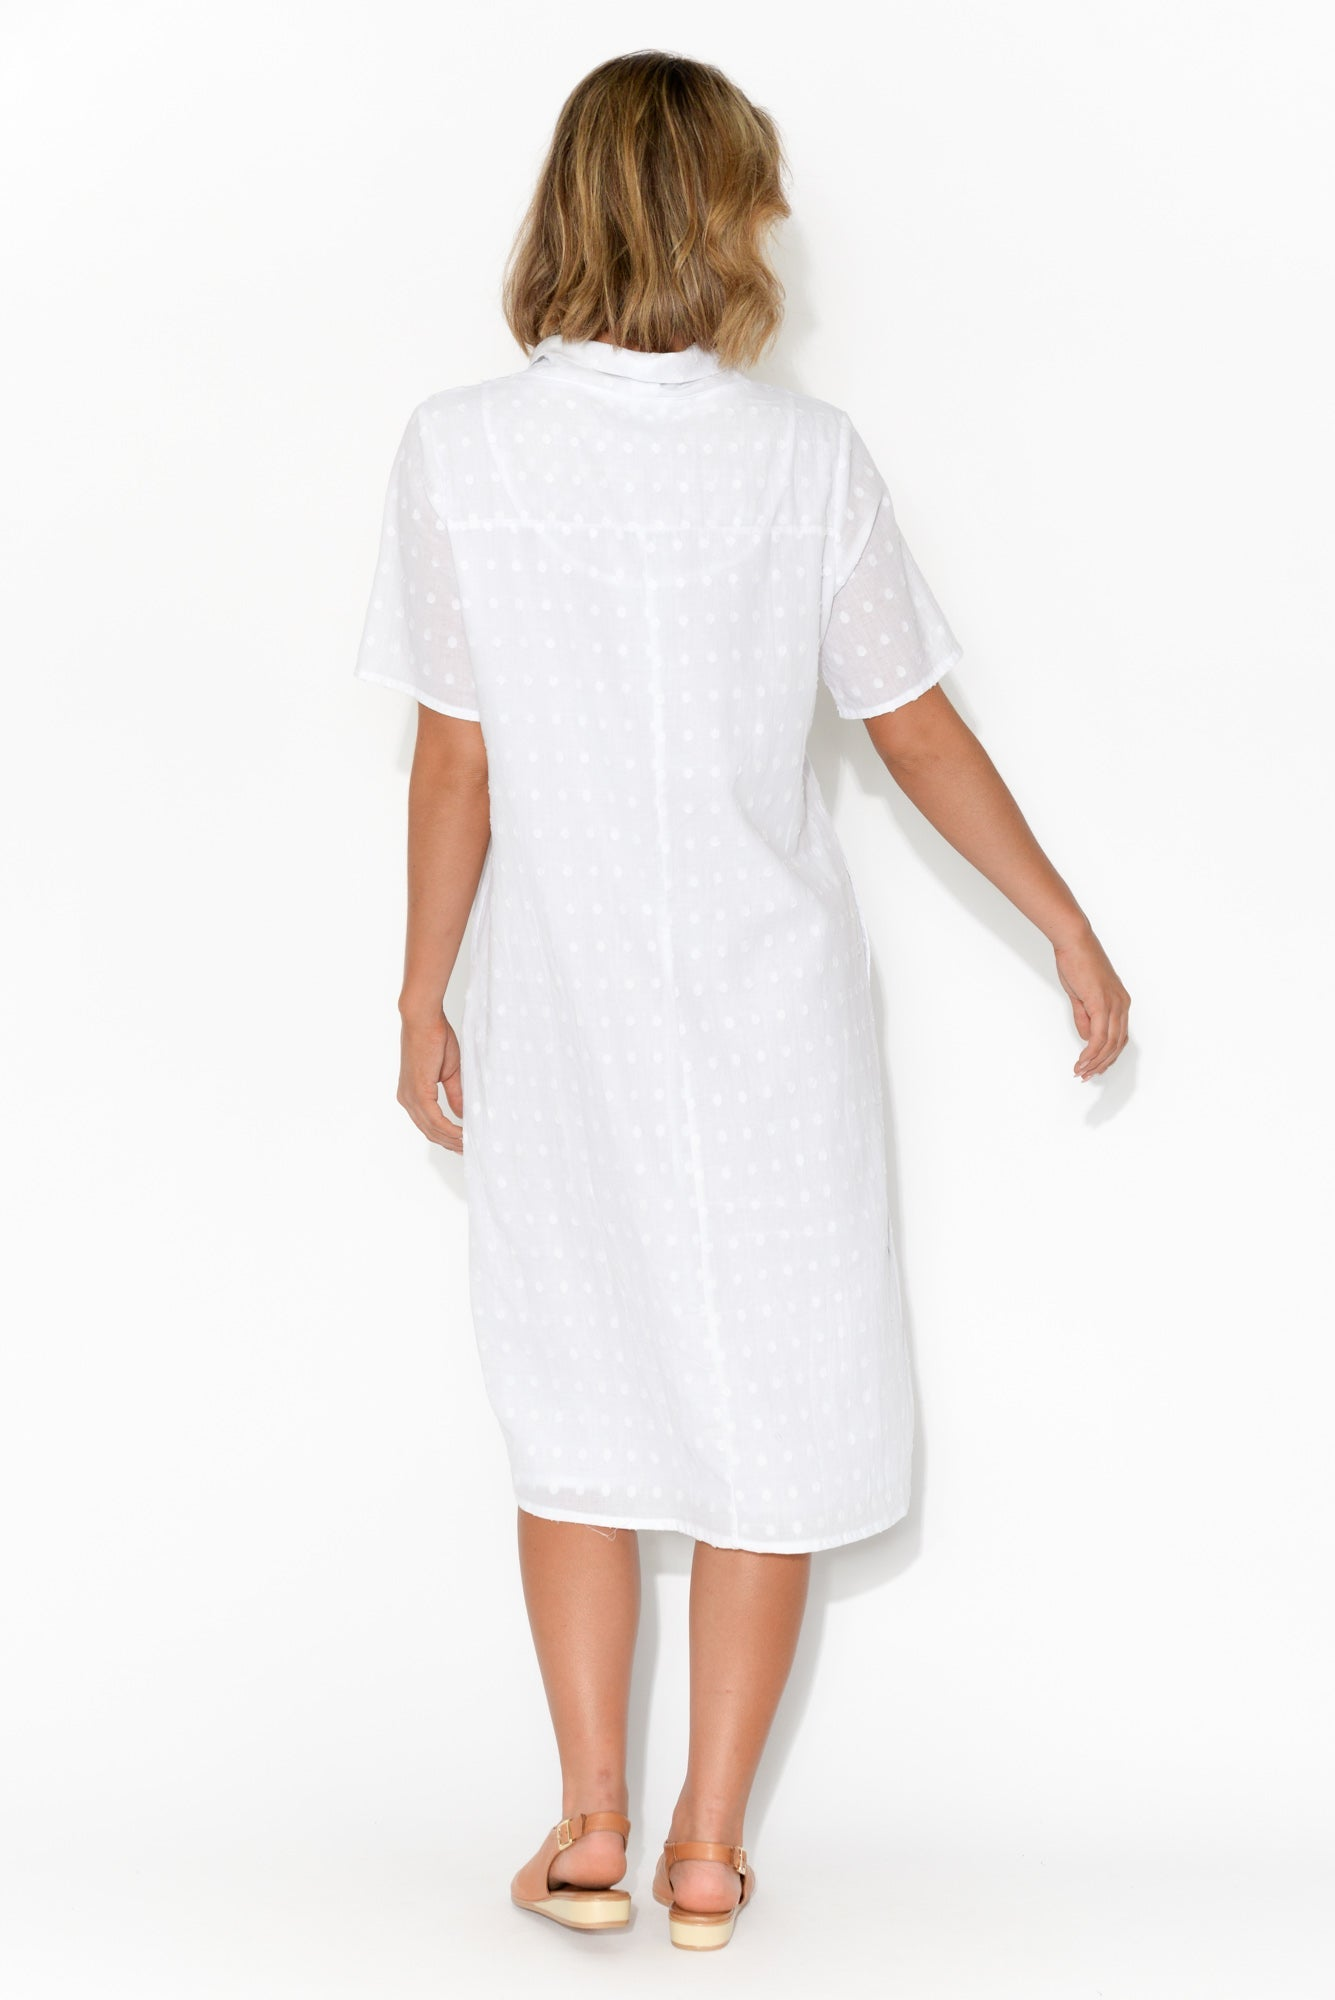 Atara White Cotton Cowl Neck Dress